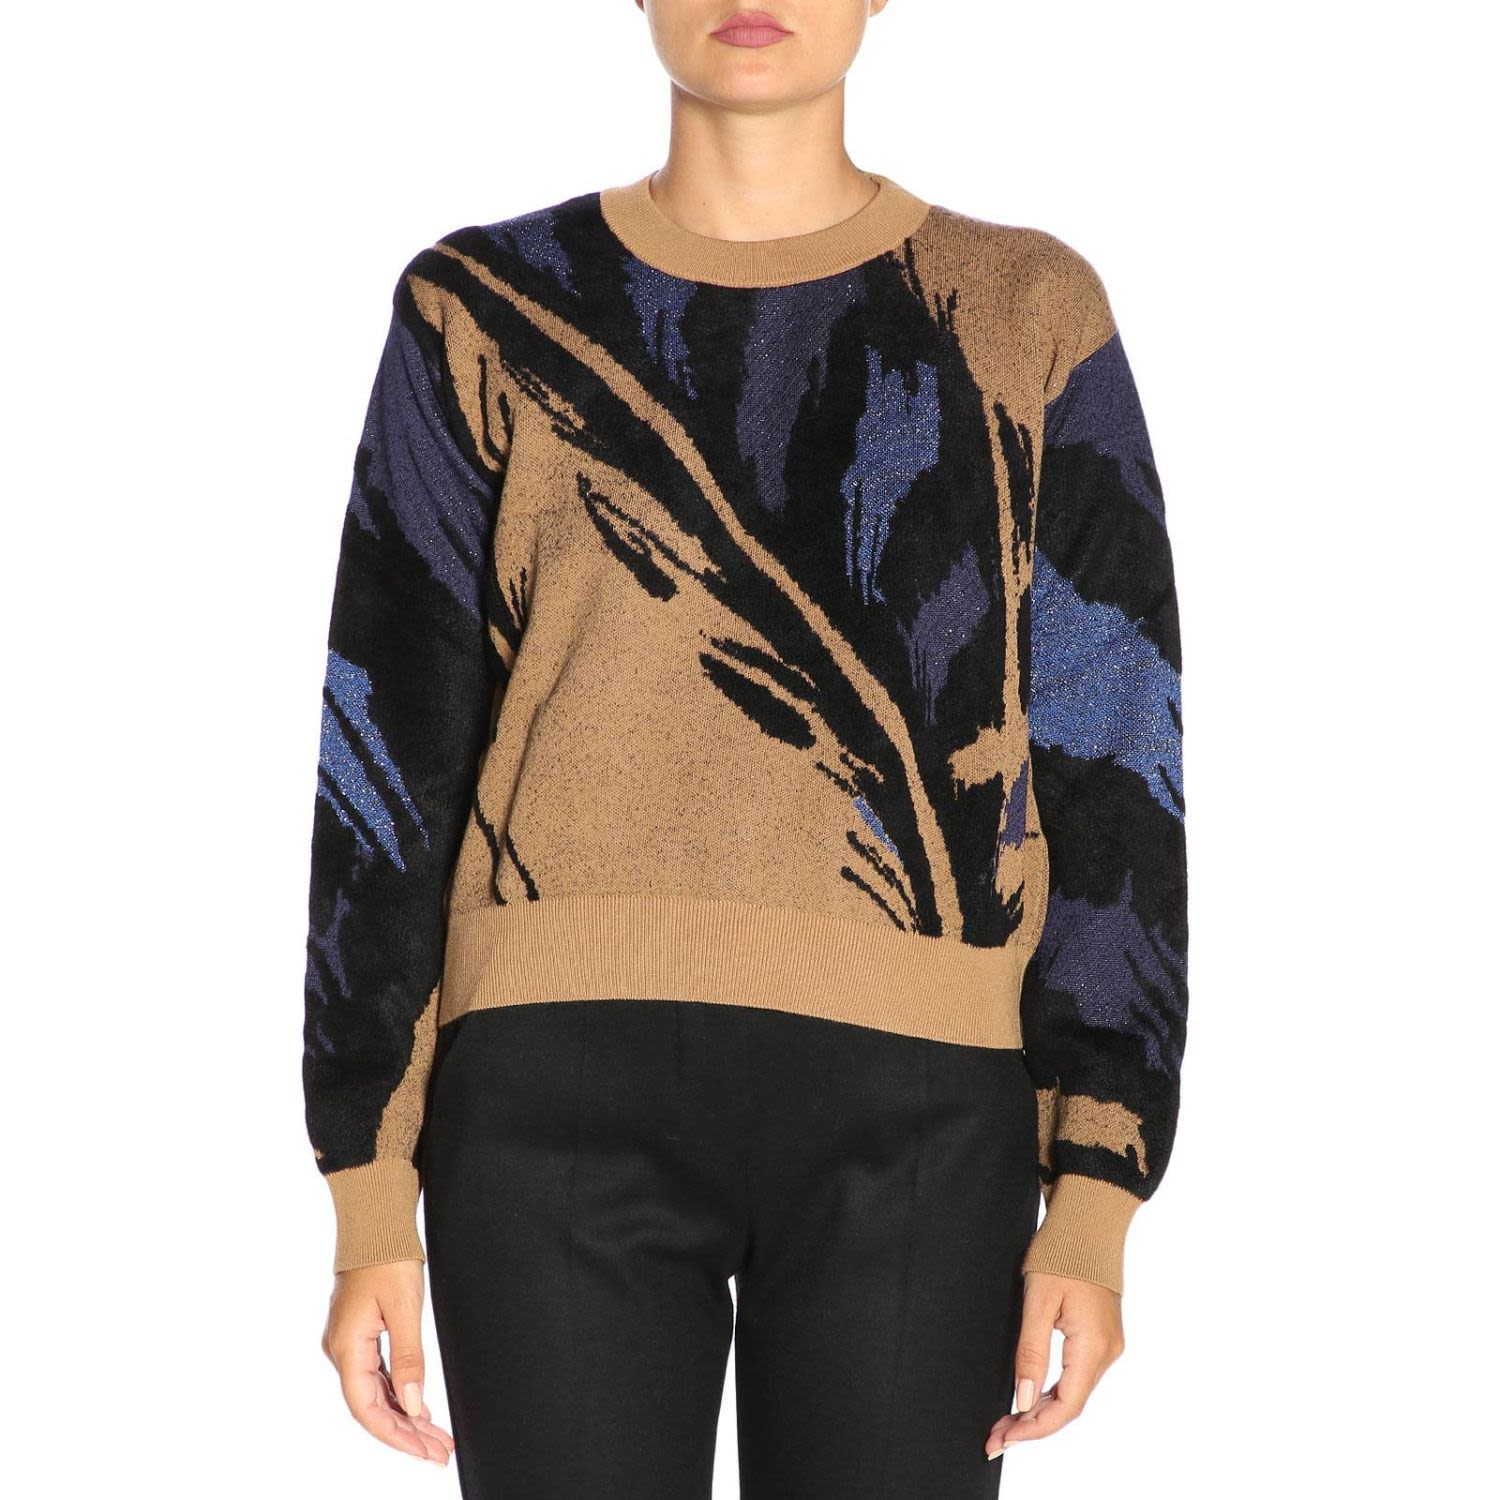 Sweater Sweater Women Just Cavalli